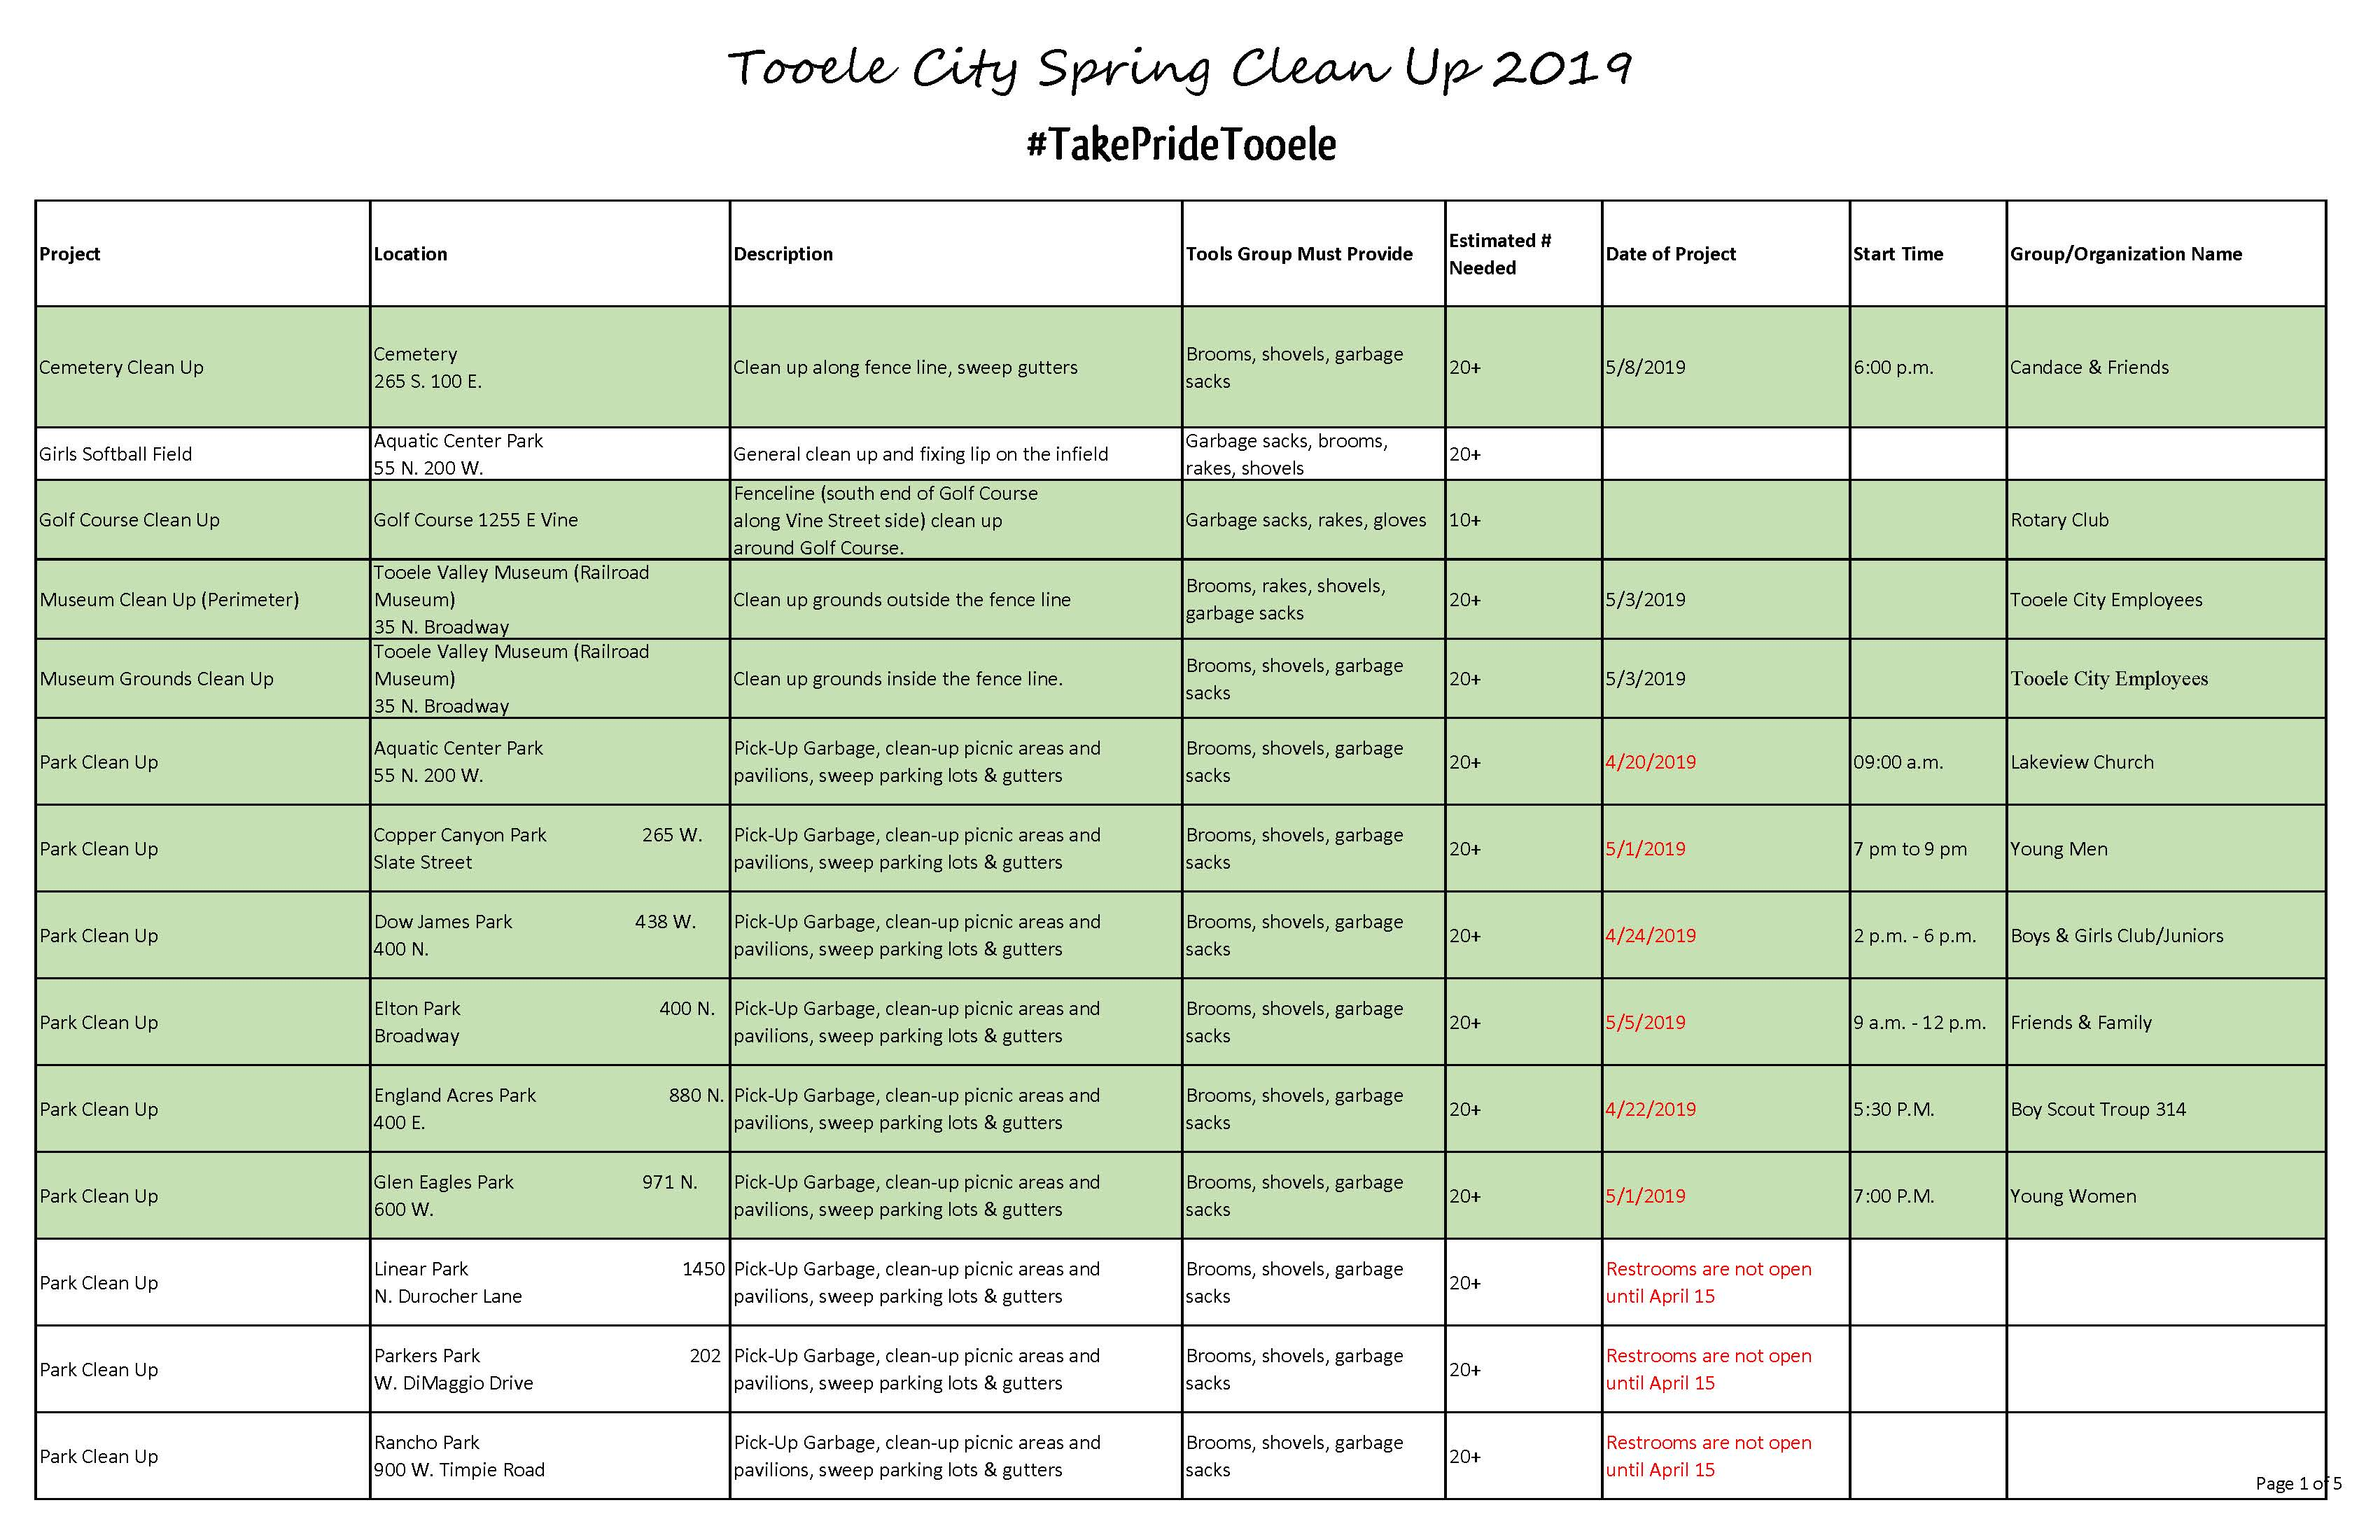 List of Projects for Spring Clean Up 2019 Updated 05-01-19_Page_1